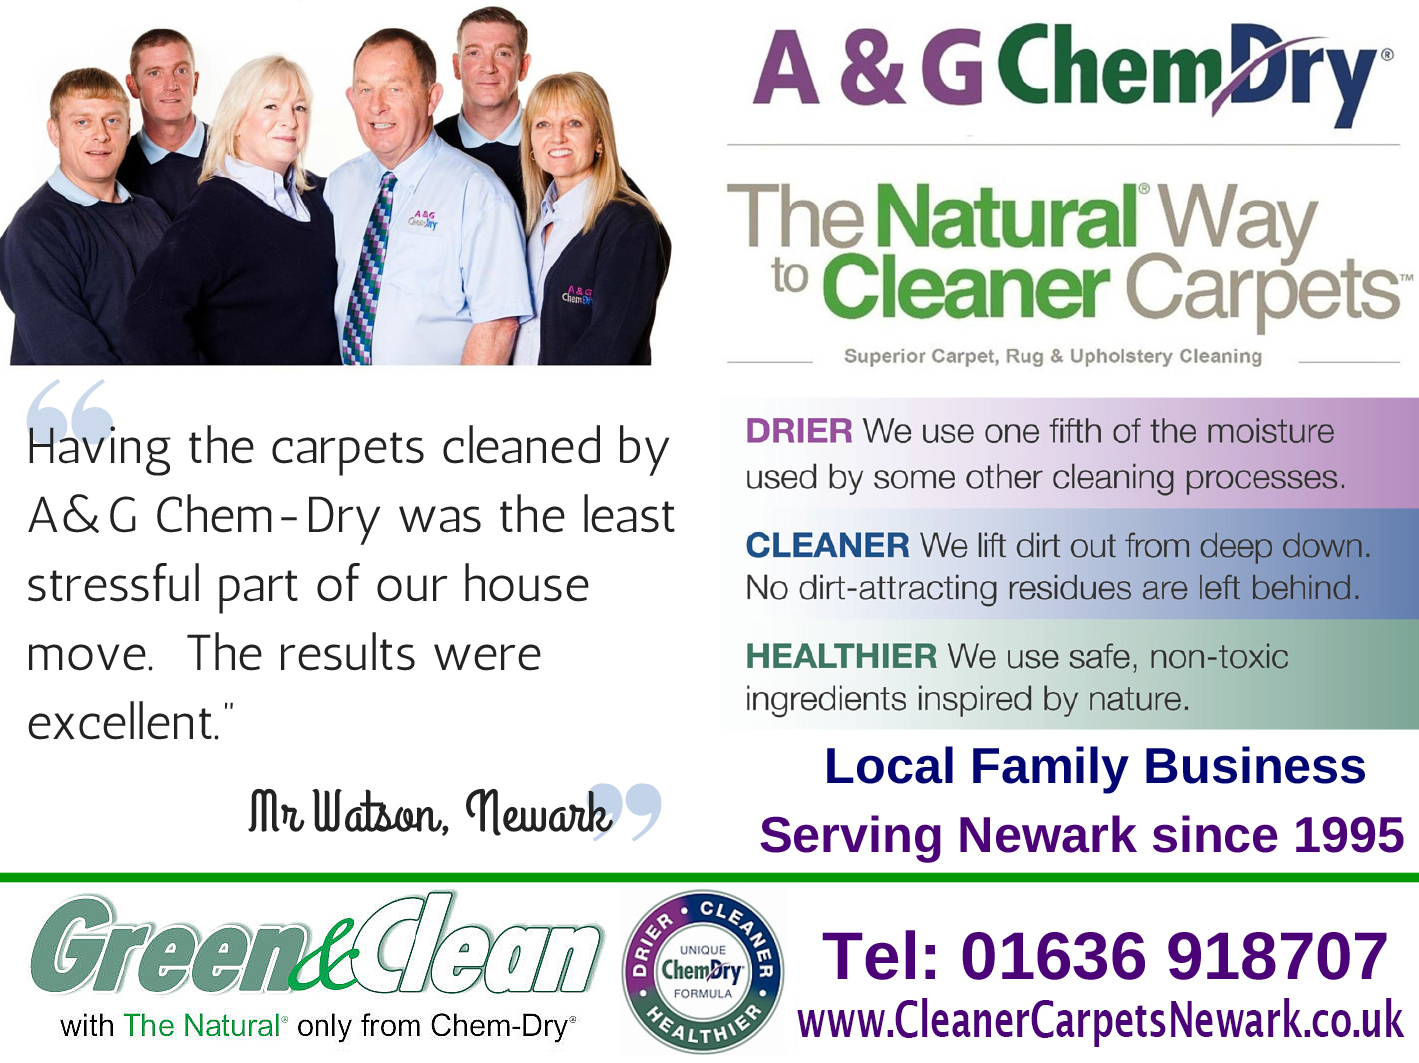 Carpet Cleaners Newark  Choose A&G Chem-Dry for Cleaner Carpets Newark - your Carpet Cleaning Experts